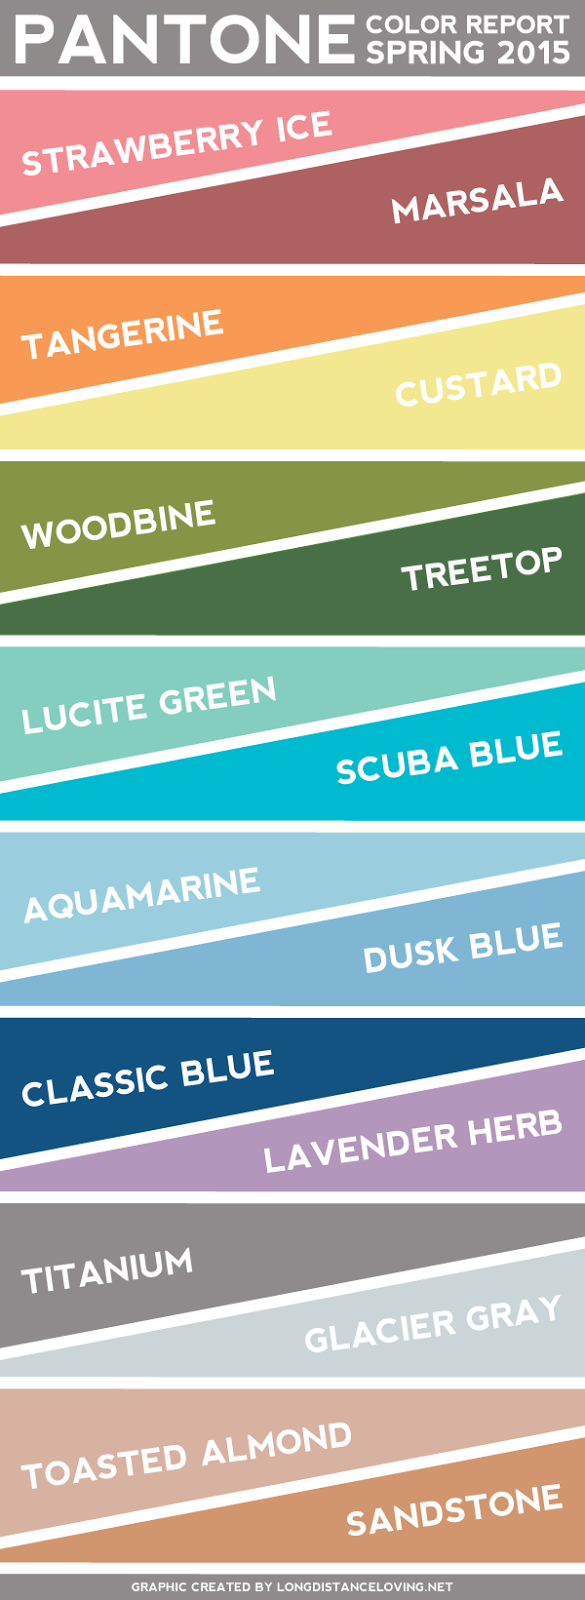 pantone-color-report-spring-2015.png